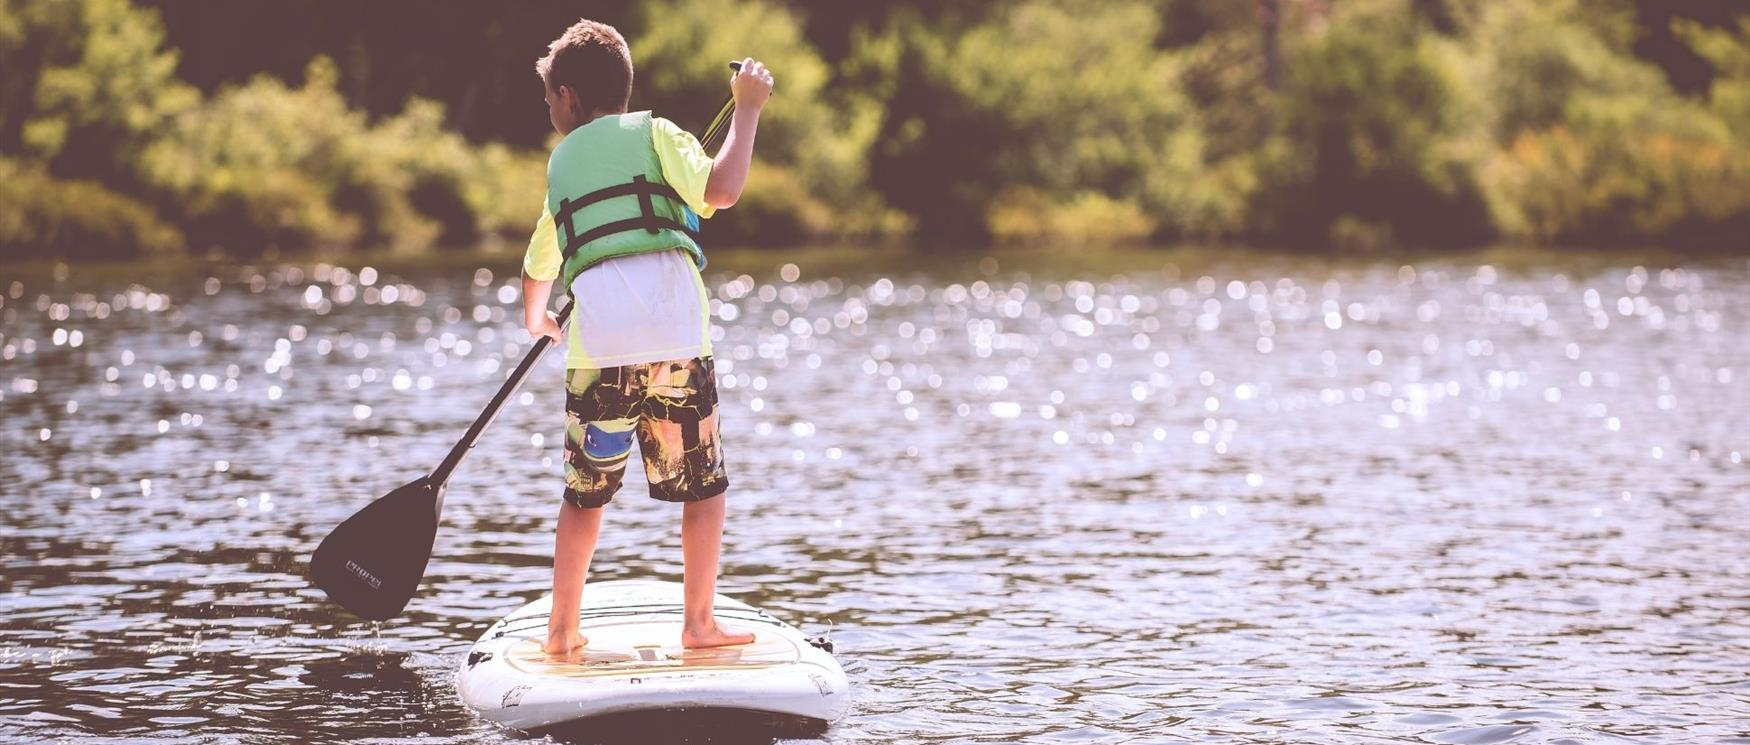 Stand-up paddle boarding in Hampshire